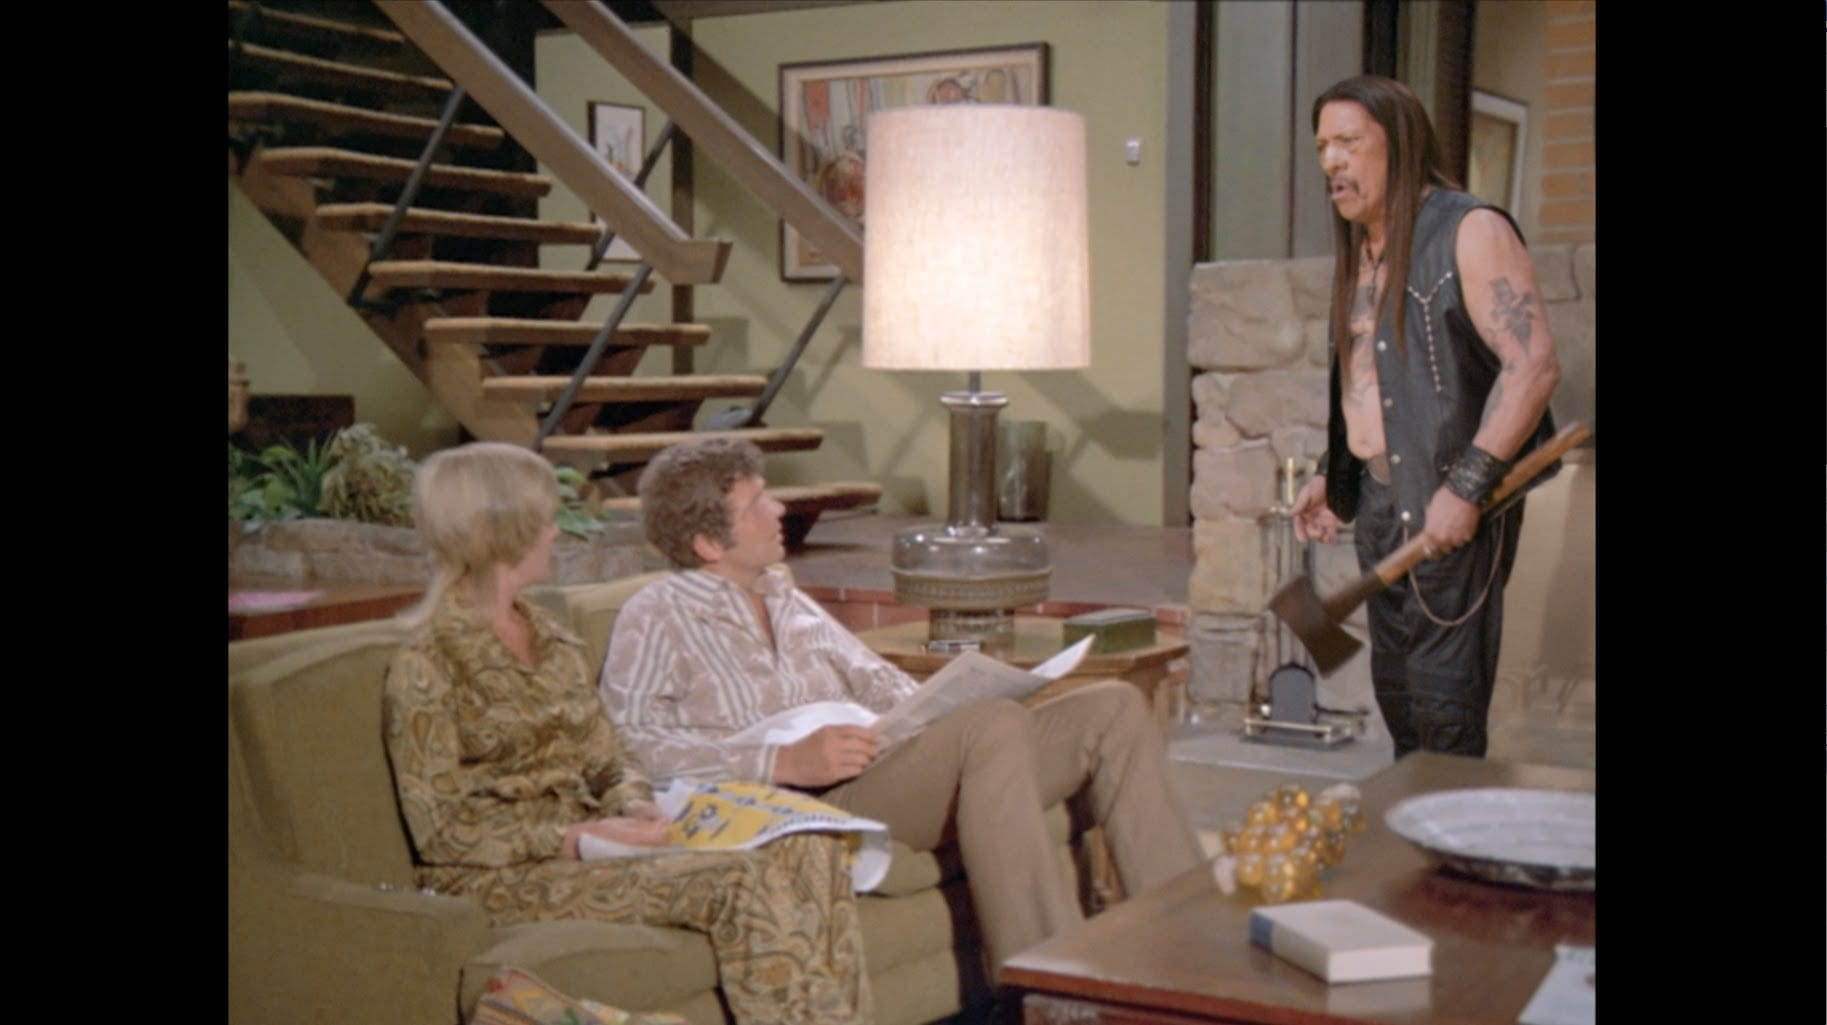 Snickers: The Brady Bunch – Super Bowl